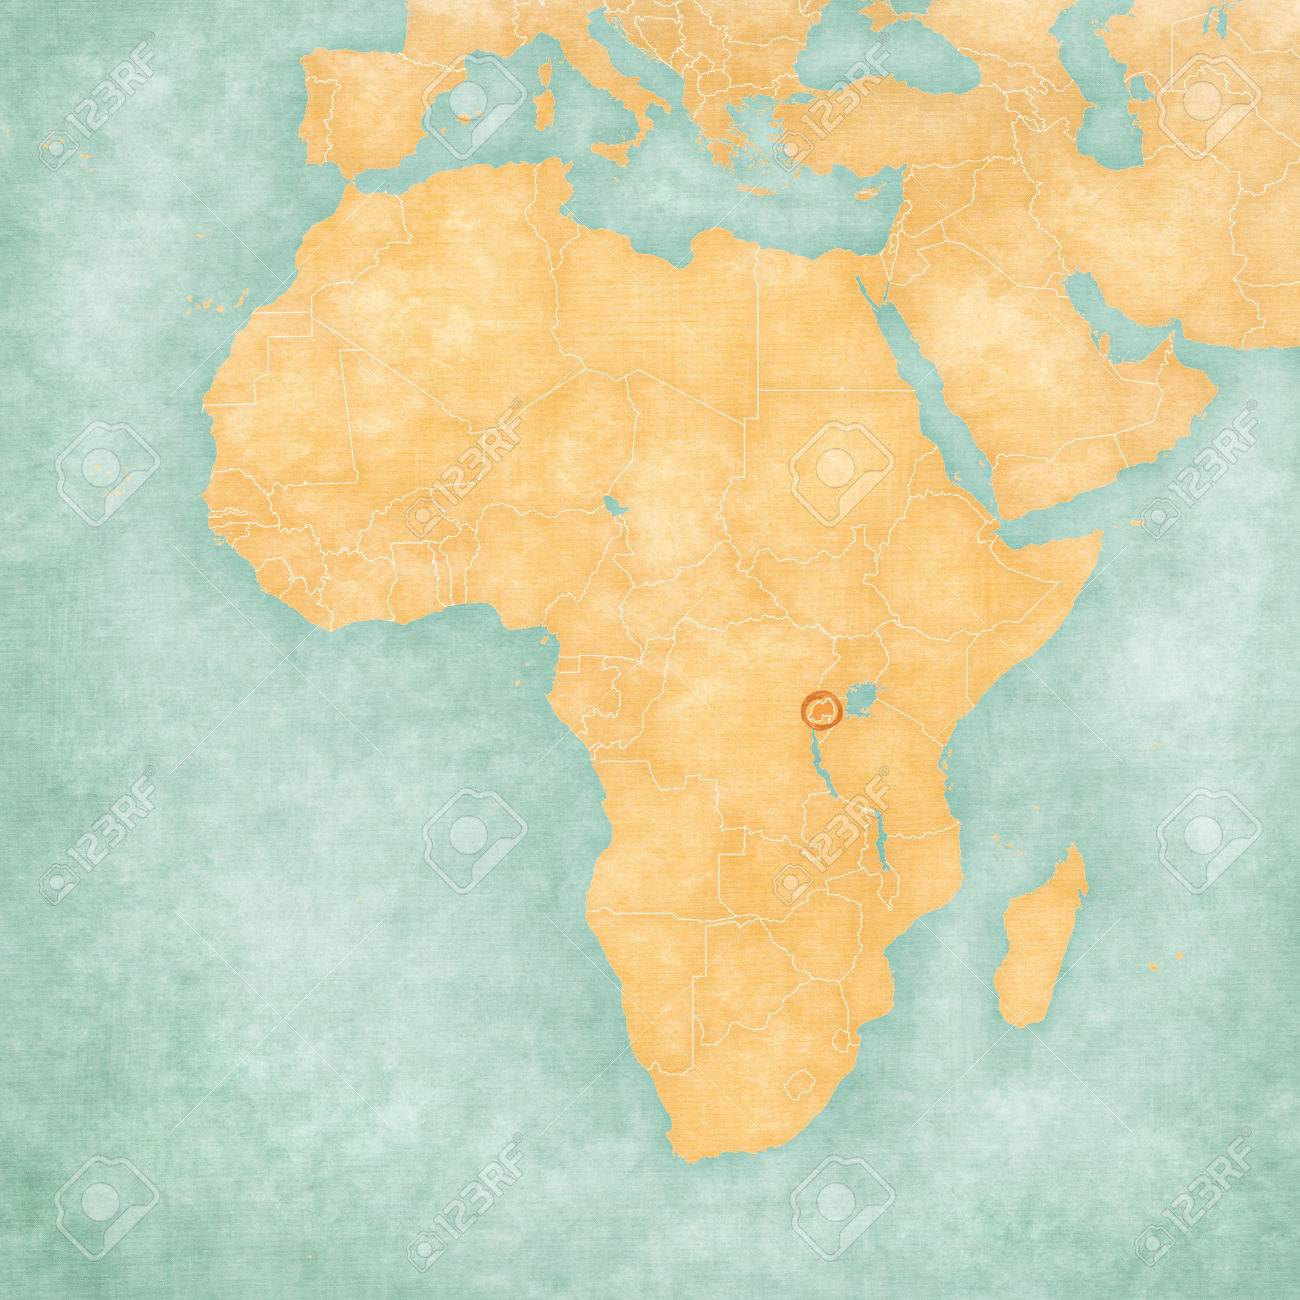 Rwanda On The Map Of Africa In Soft Grunge And Vintage Style ...